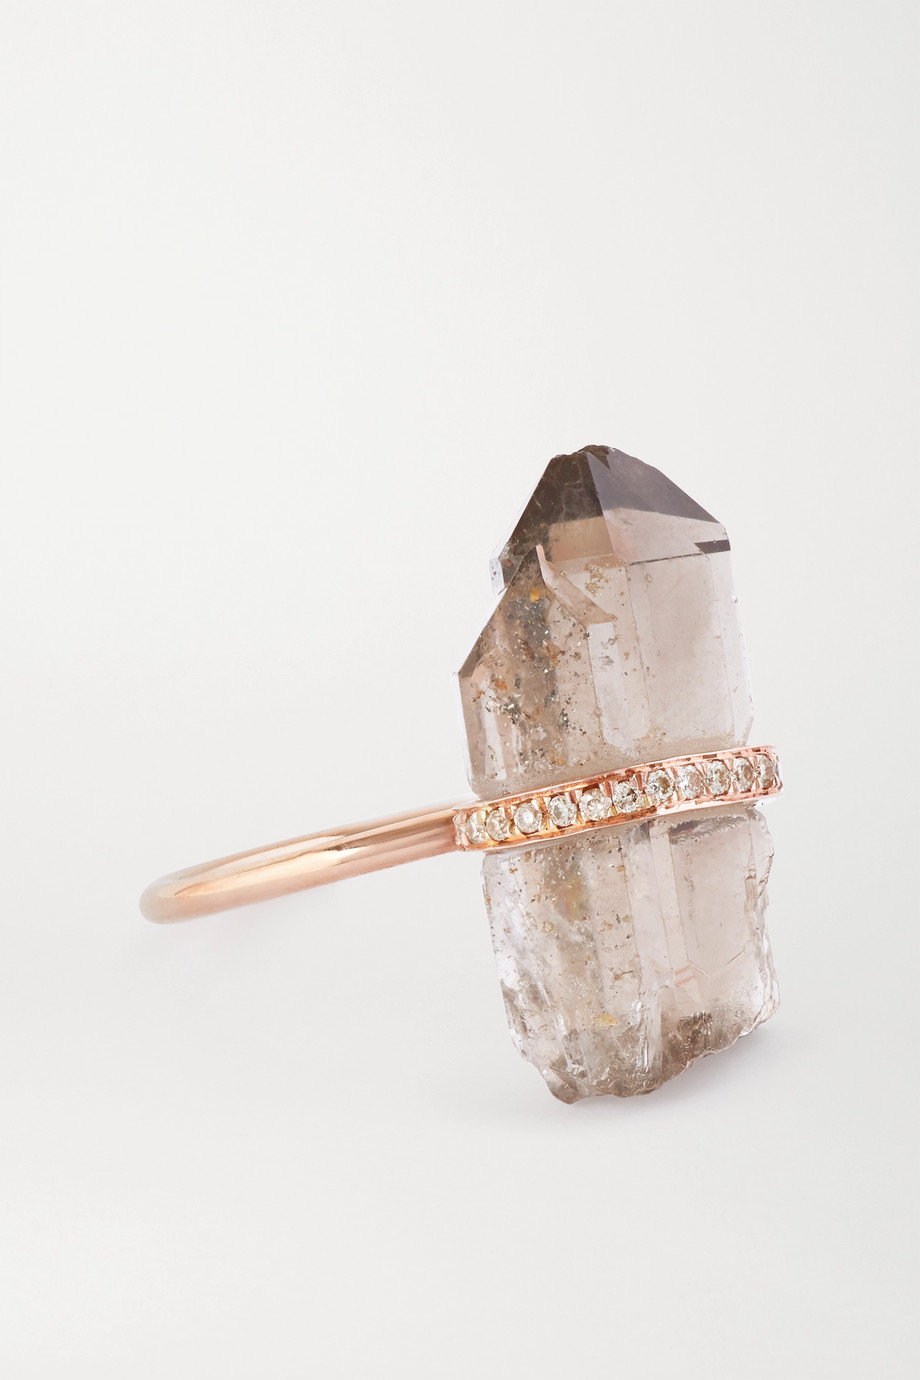 JIA JIA 14-karat rose gold, quartz and diamond ring